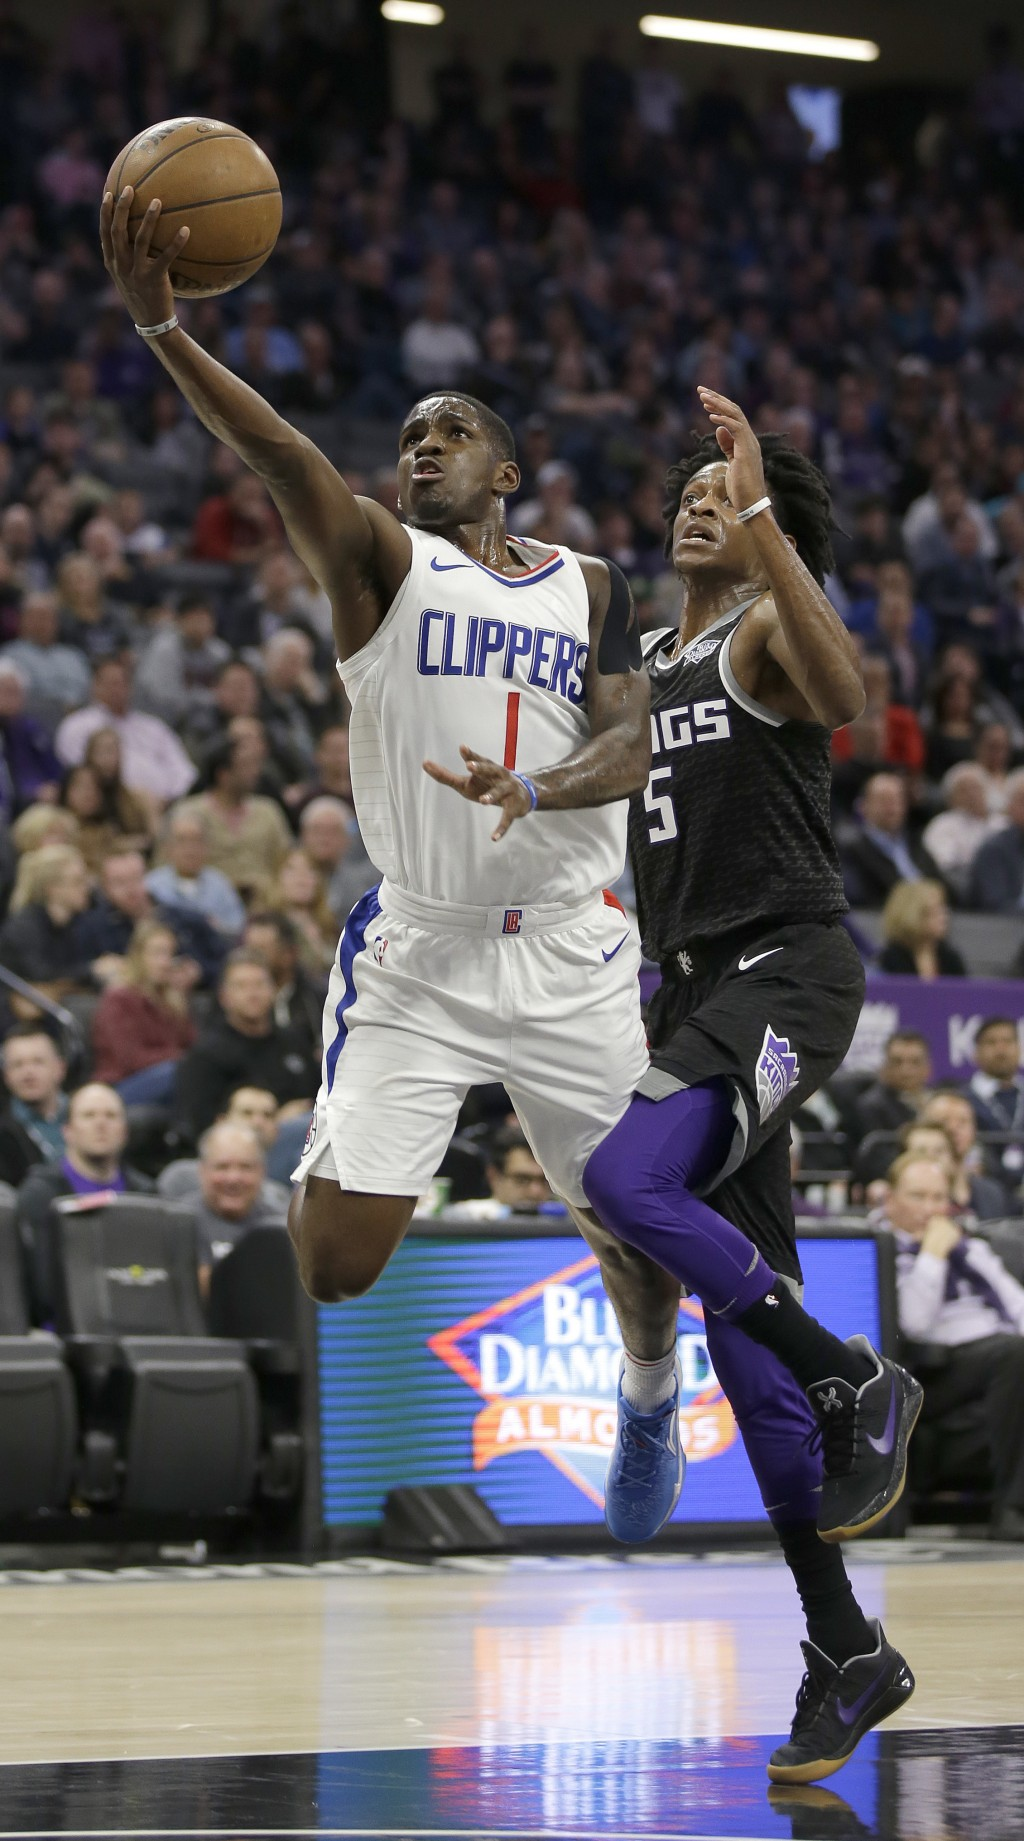 Los Angeles Clippers guard Jawun Evans, left, goes to the basket against Sacramento Kings guard De'Aaron Fox during the first quarter of an NBA basket